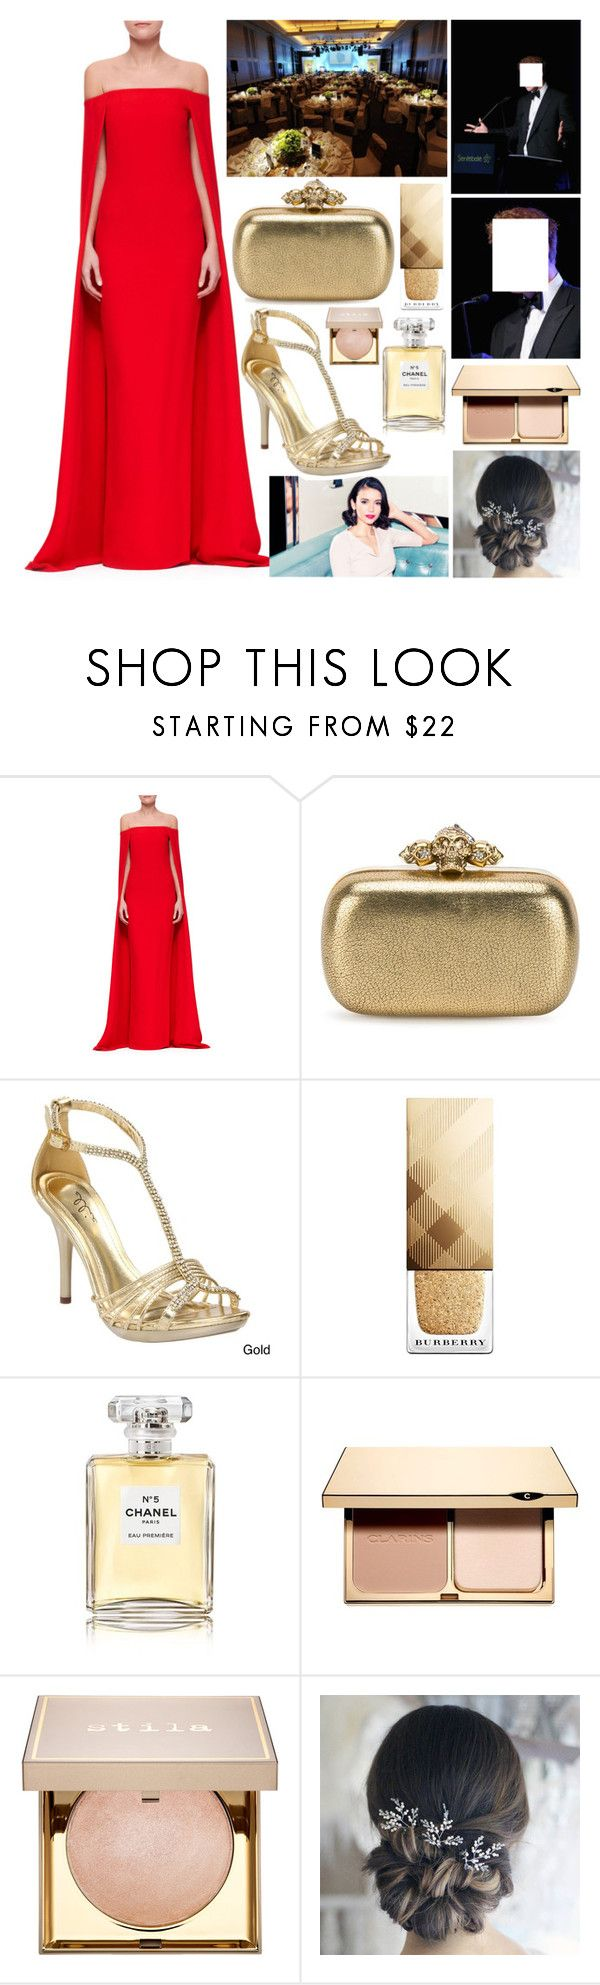 """""""'Forget Me Not' special dinner."""" by duchessamparo ❤ liked on Polyvore featuring Ralph Lauren Collection, Alexander McQueen, Ellie, Burberry, Chanel, Clarins and Stila"""